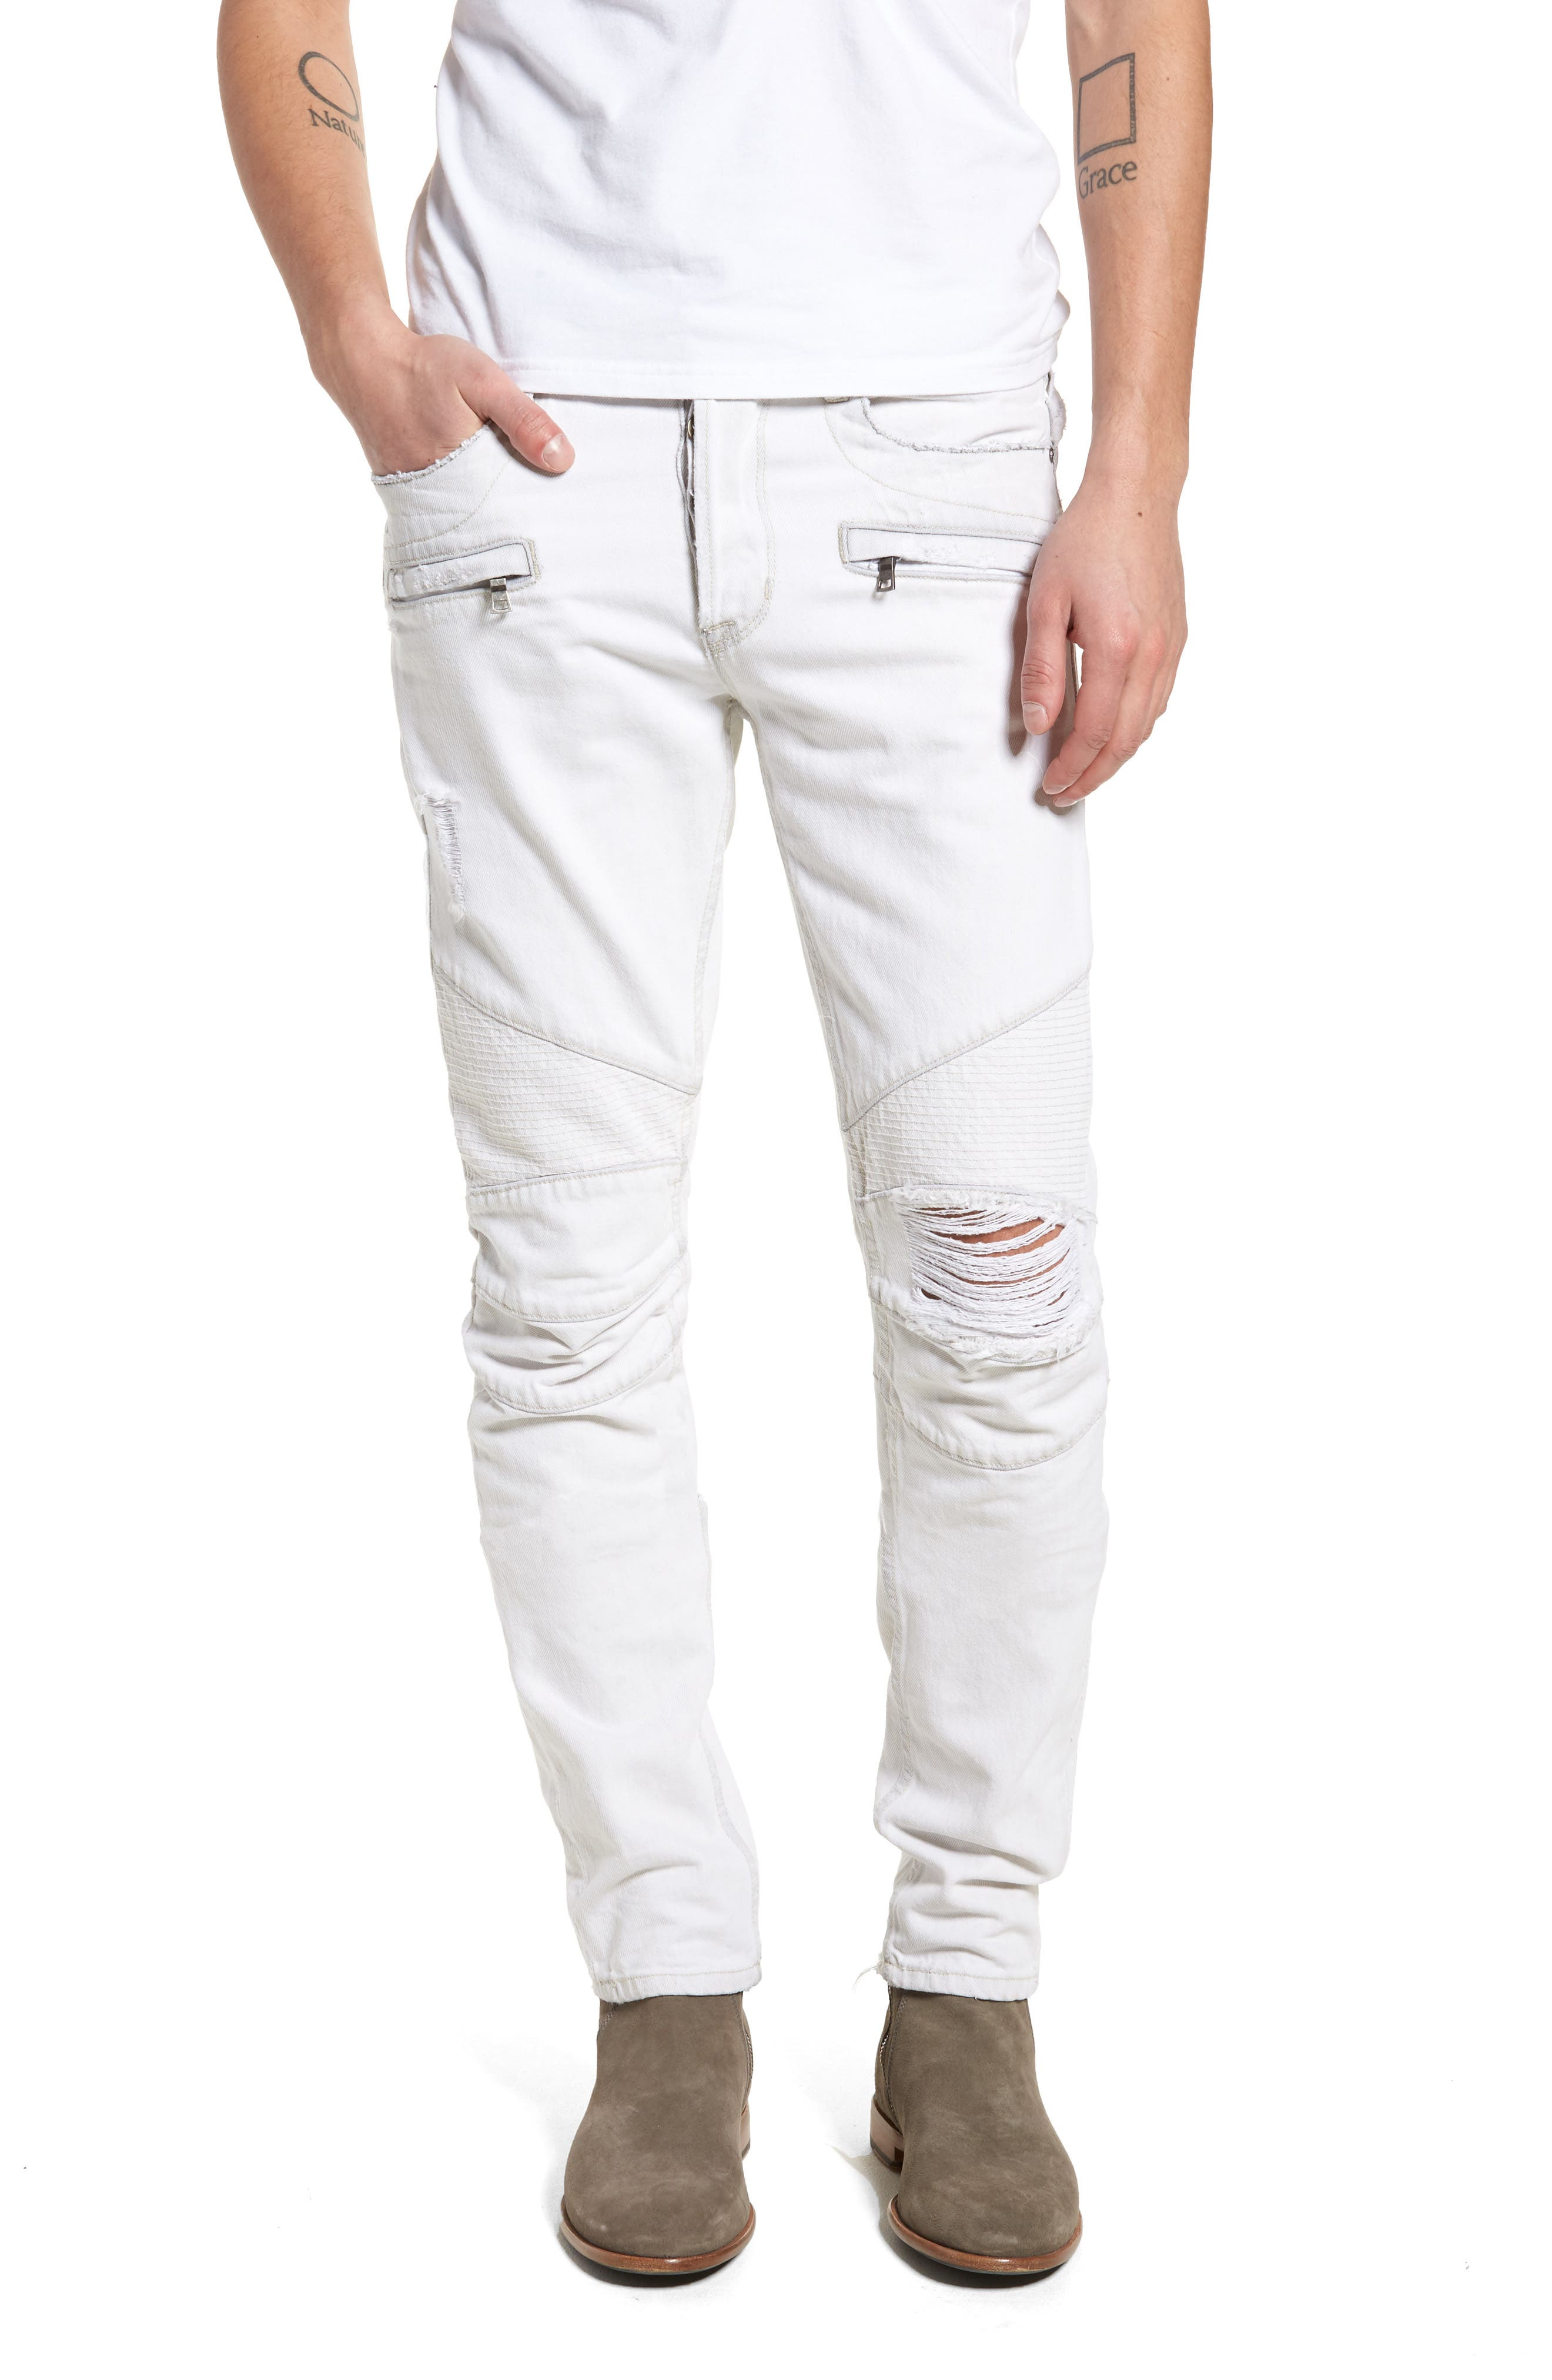 Blinder Biker Skinny Fit Moto Jeans,                         Main,                         color, EXTRACTED WHITE